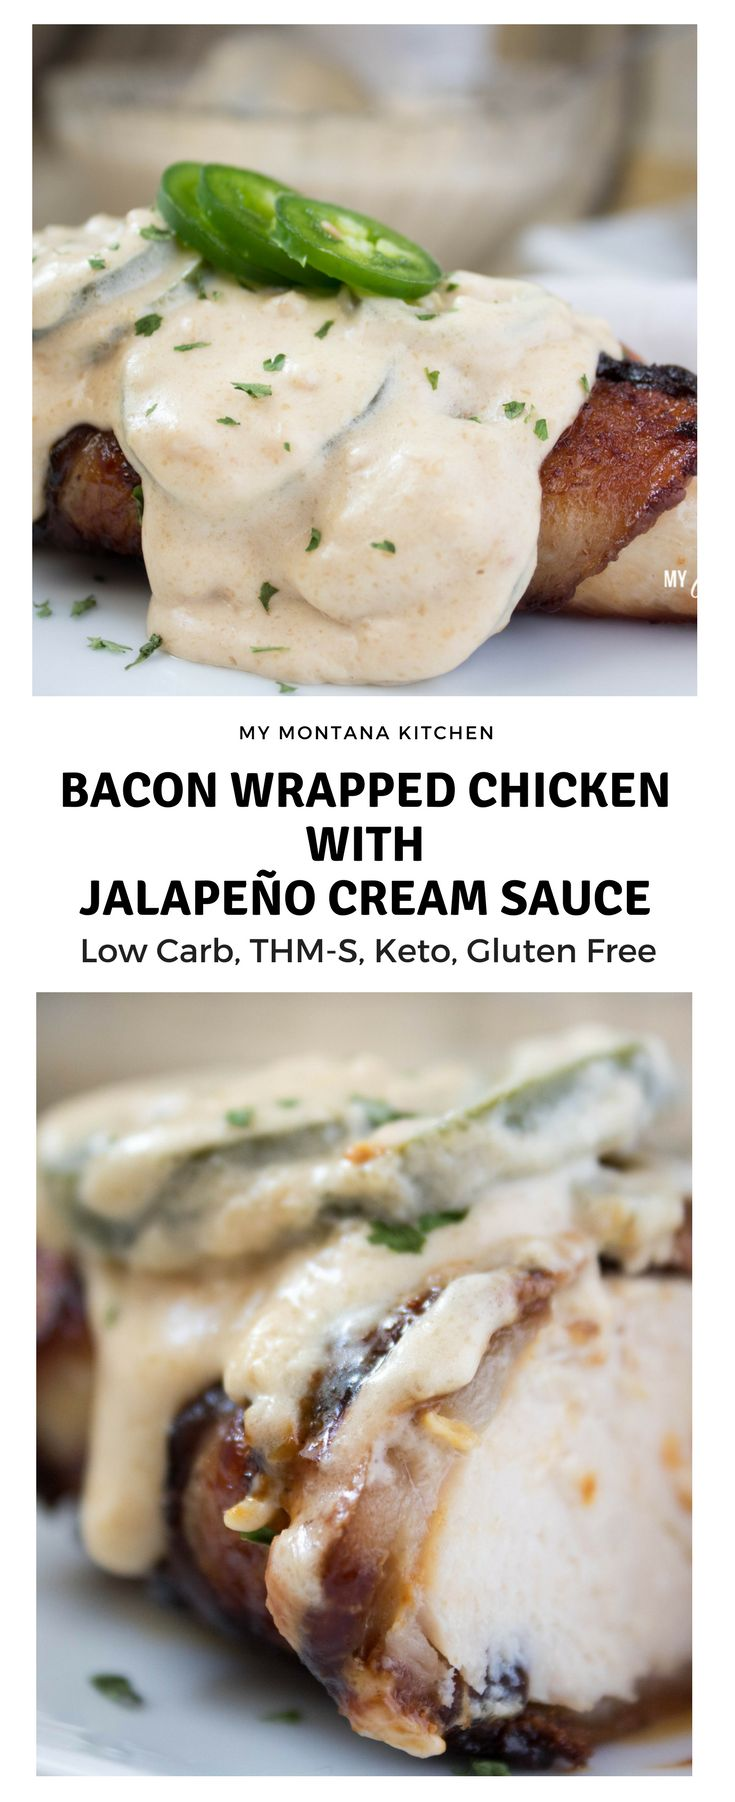 Bacon-Wrapped Chicken with Jalapeño Cream Sauce (S)